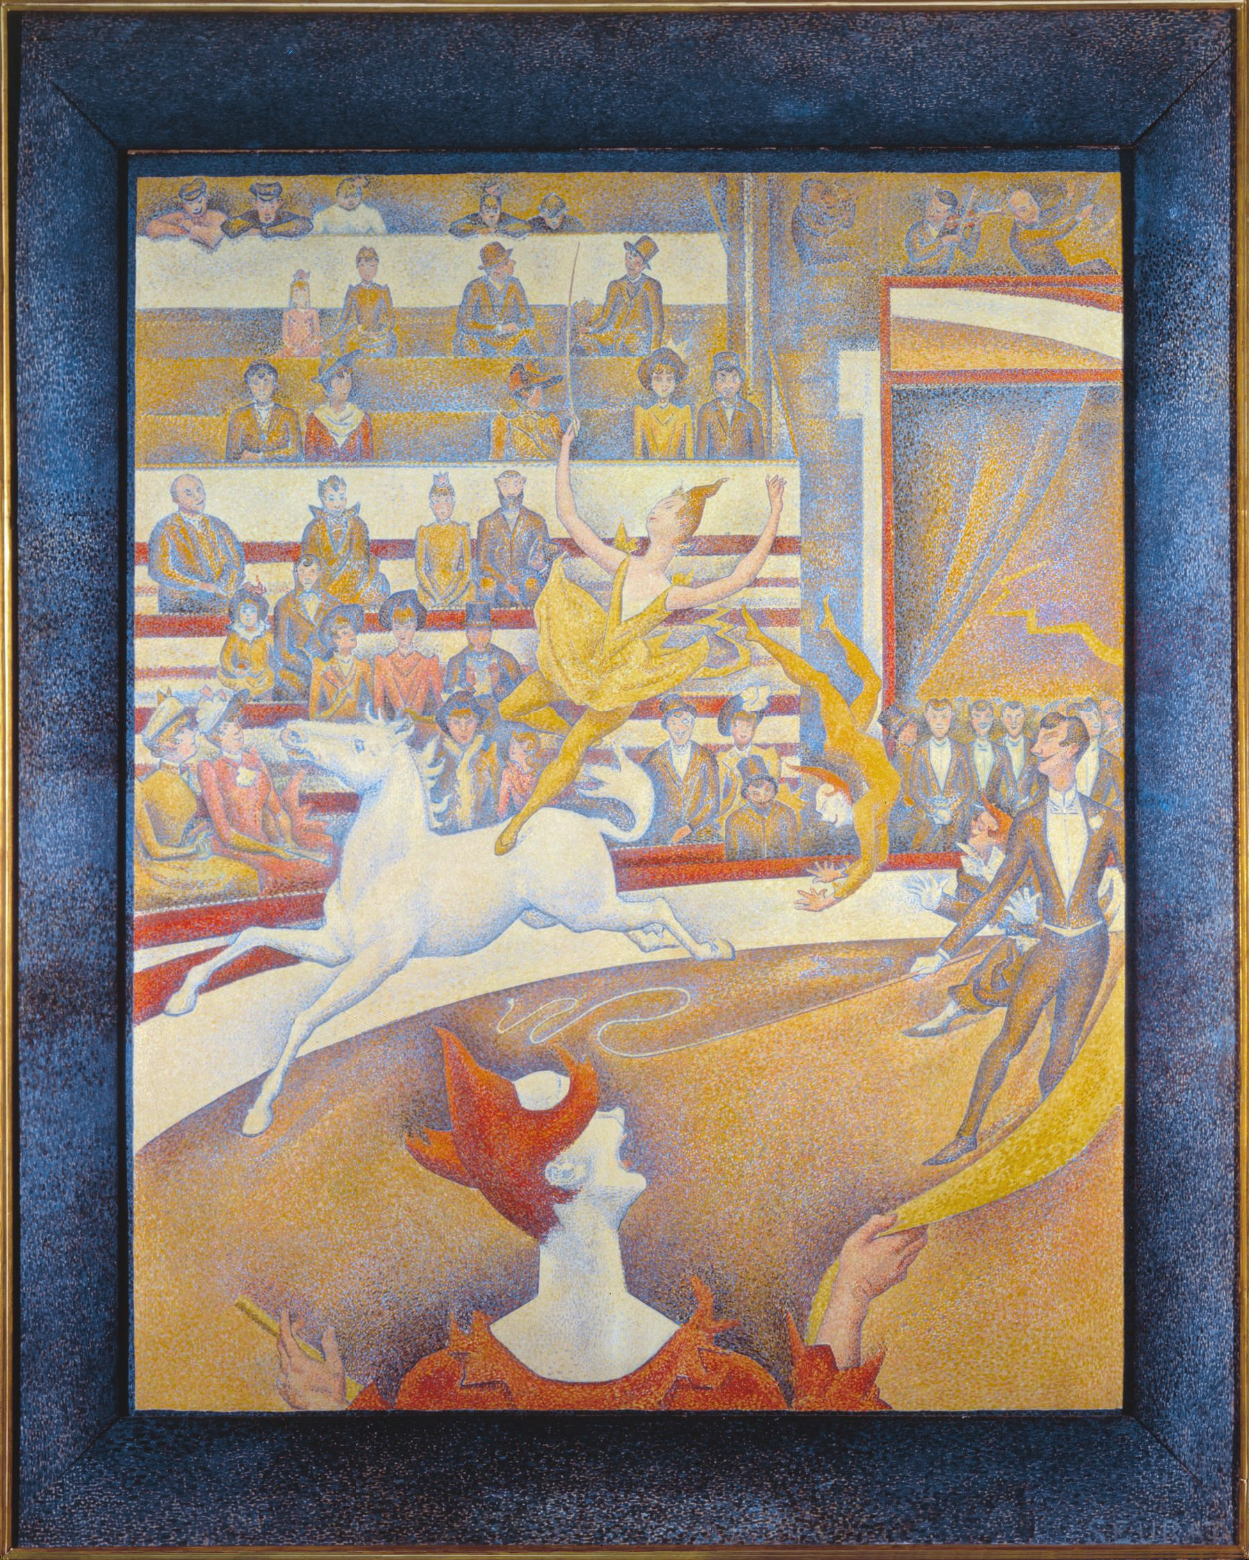 The Circus Georges Seurat 1890, Oil on canvas